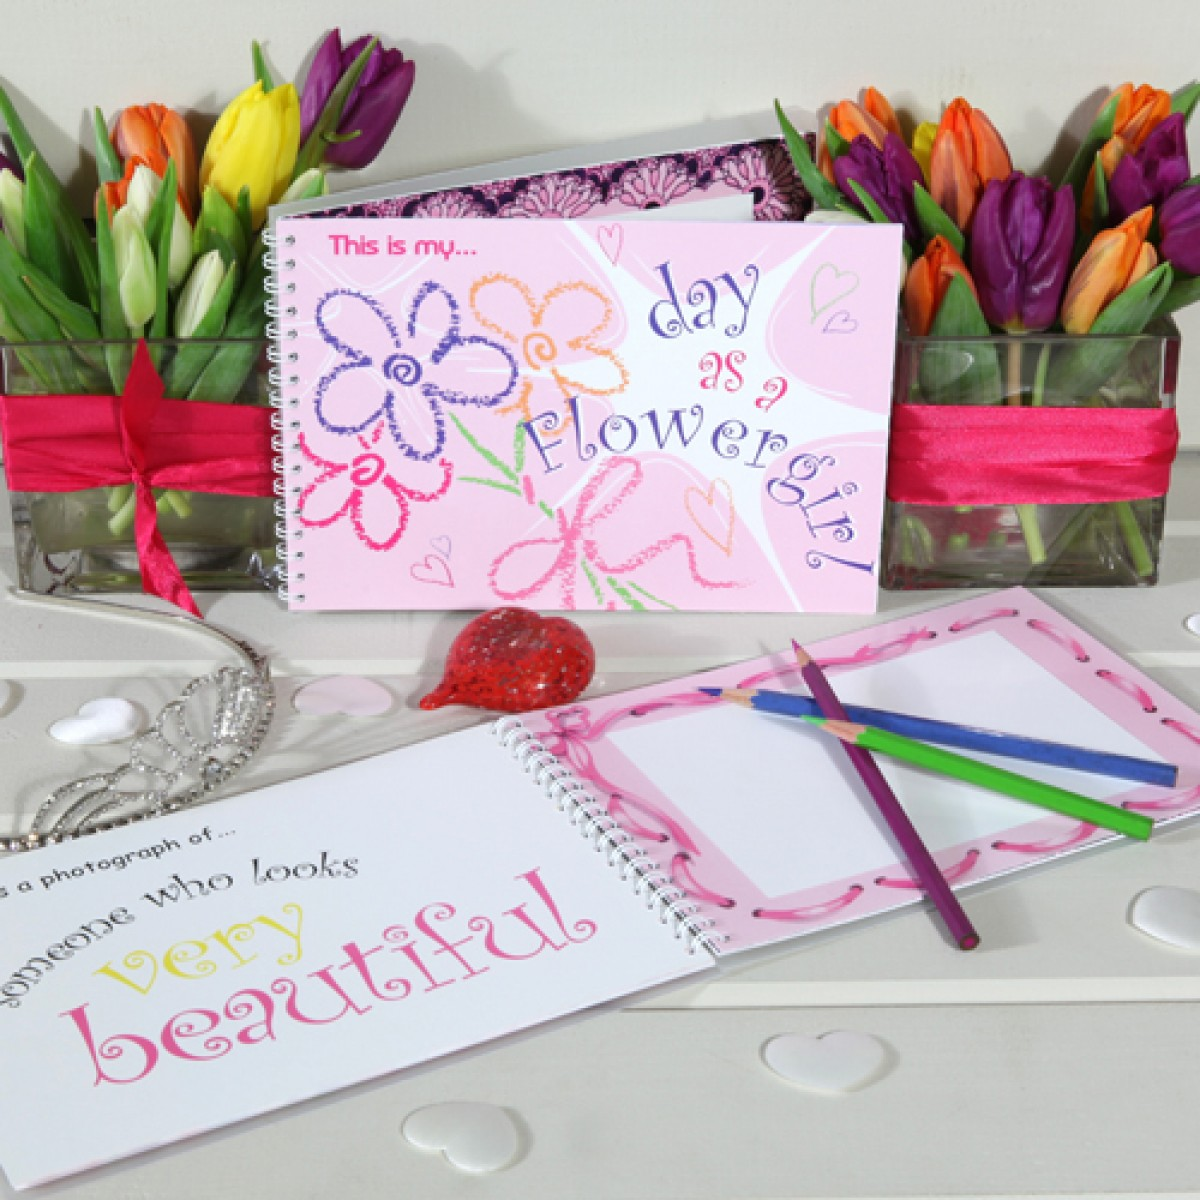 This is my Day as a Flowergirl Playbook | The Bridal Gift Box